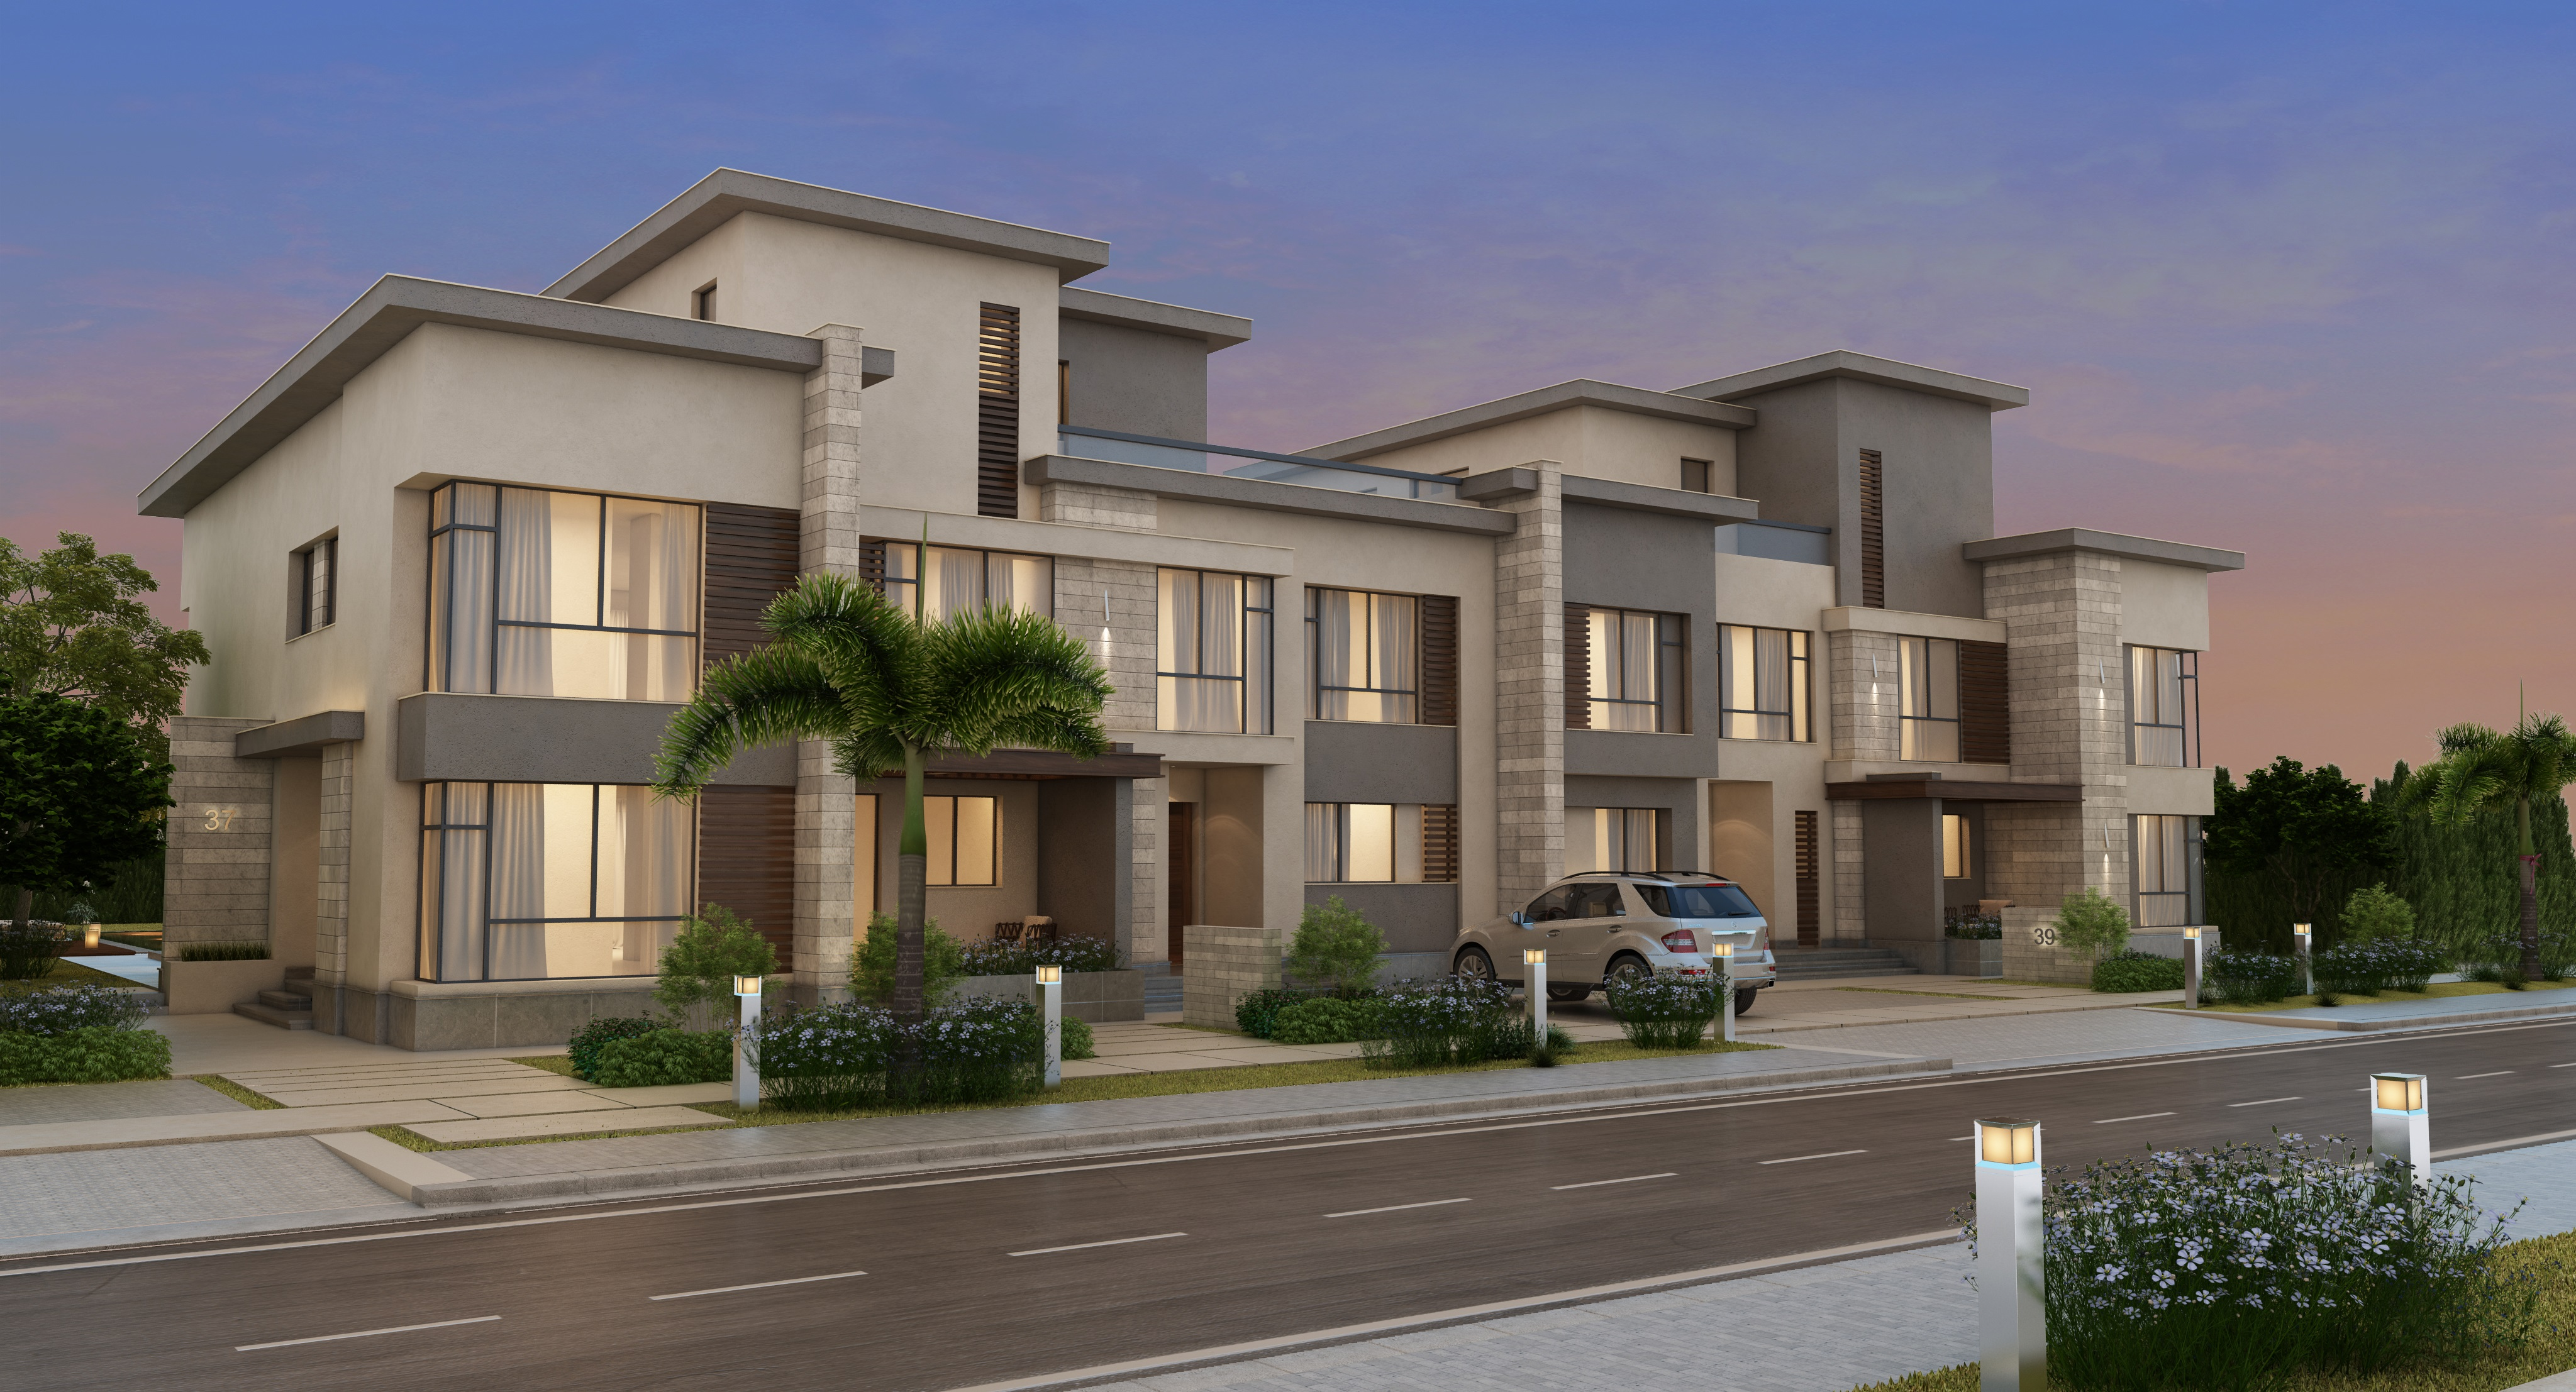 450-townhouse-middle-left